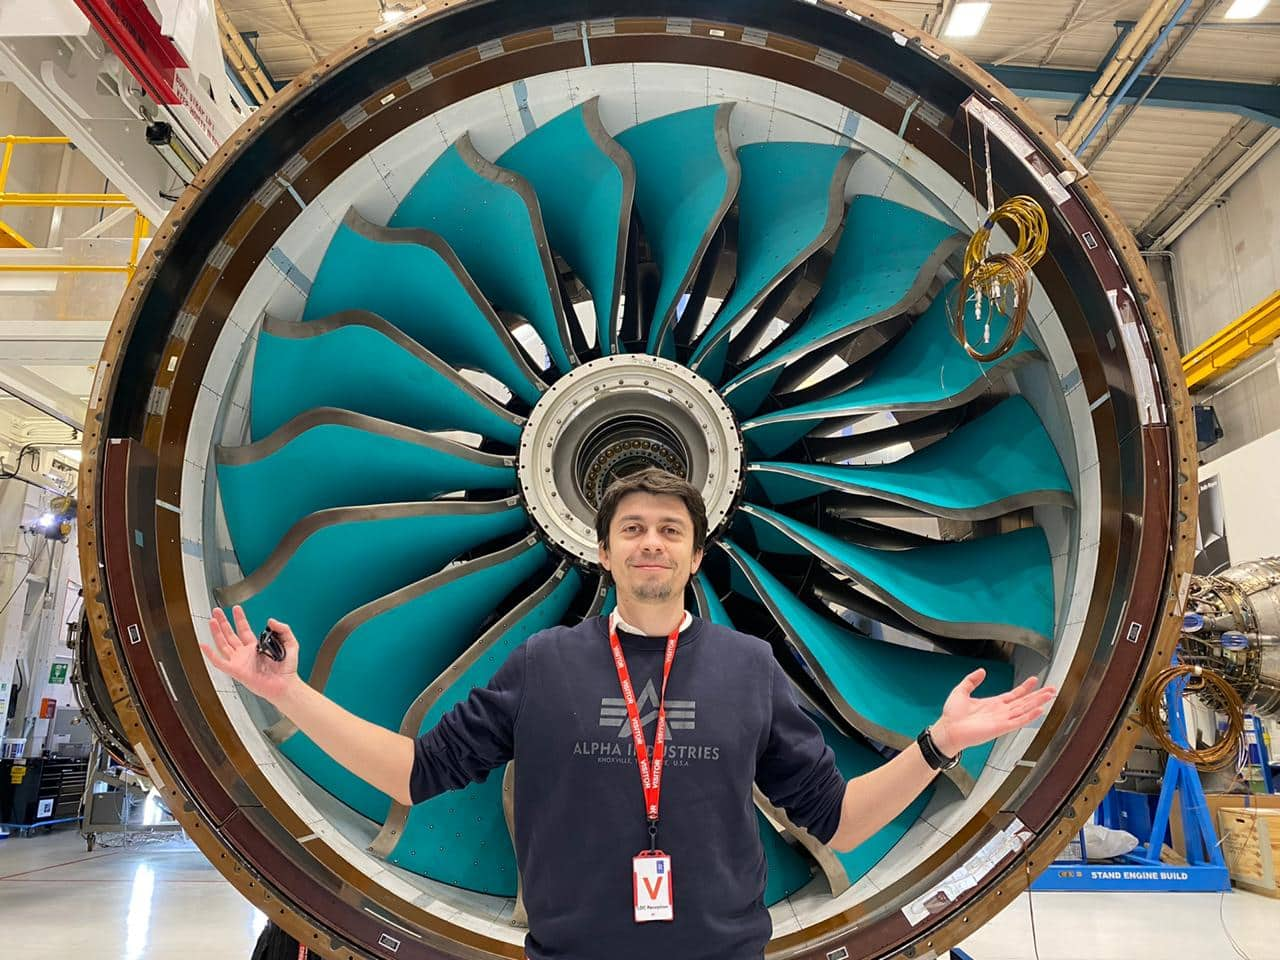 FOTO REPORT: Rolls Royce (Airbus 350 Trent XWB, DreamFix, Test Bed 80)